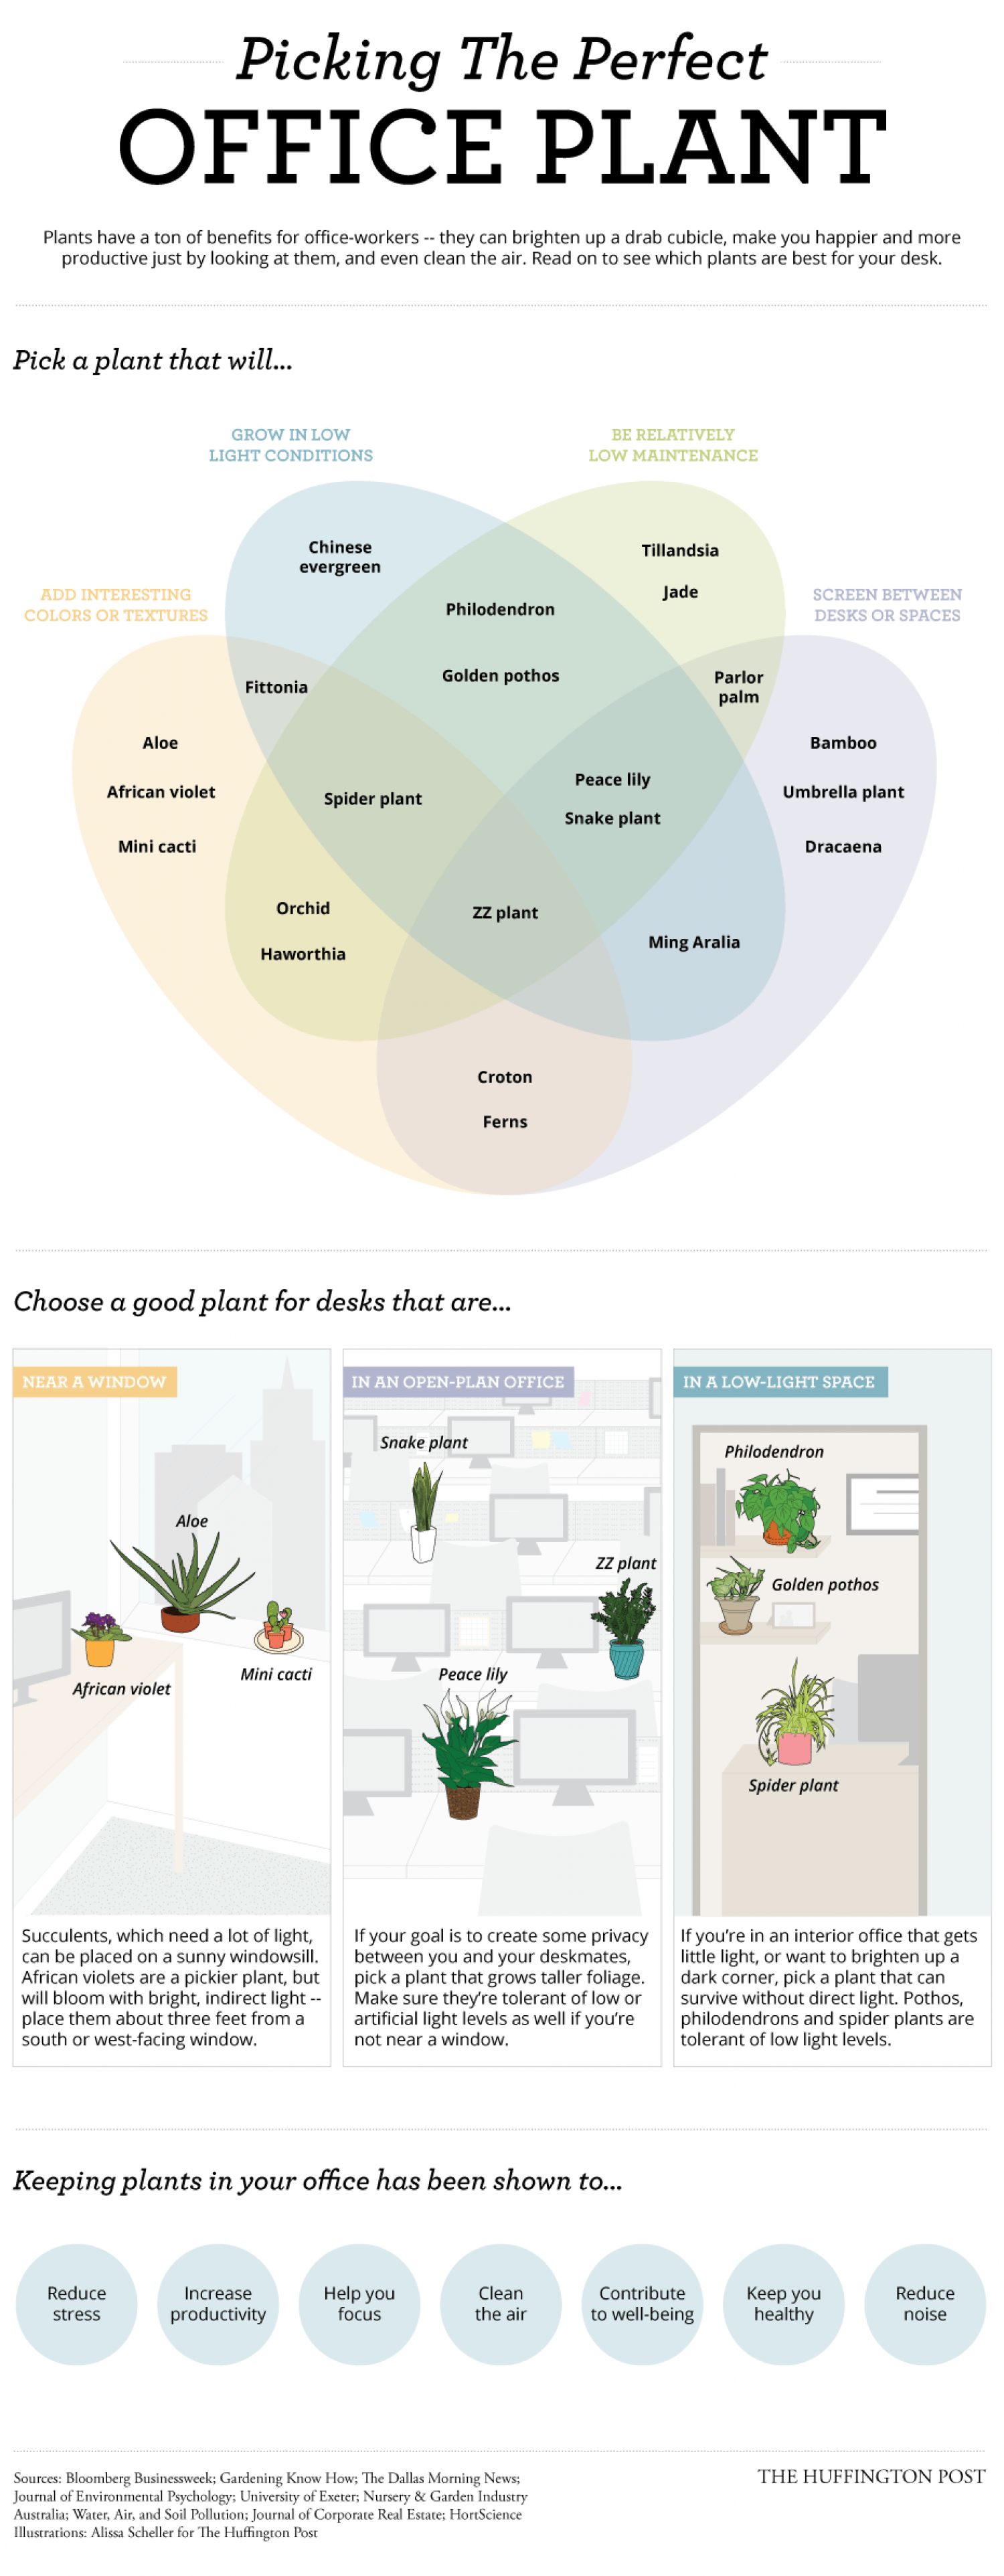 Superbe Picking The Perfect Office Plant Infographic